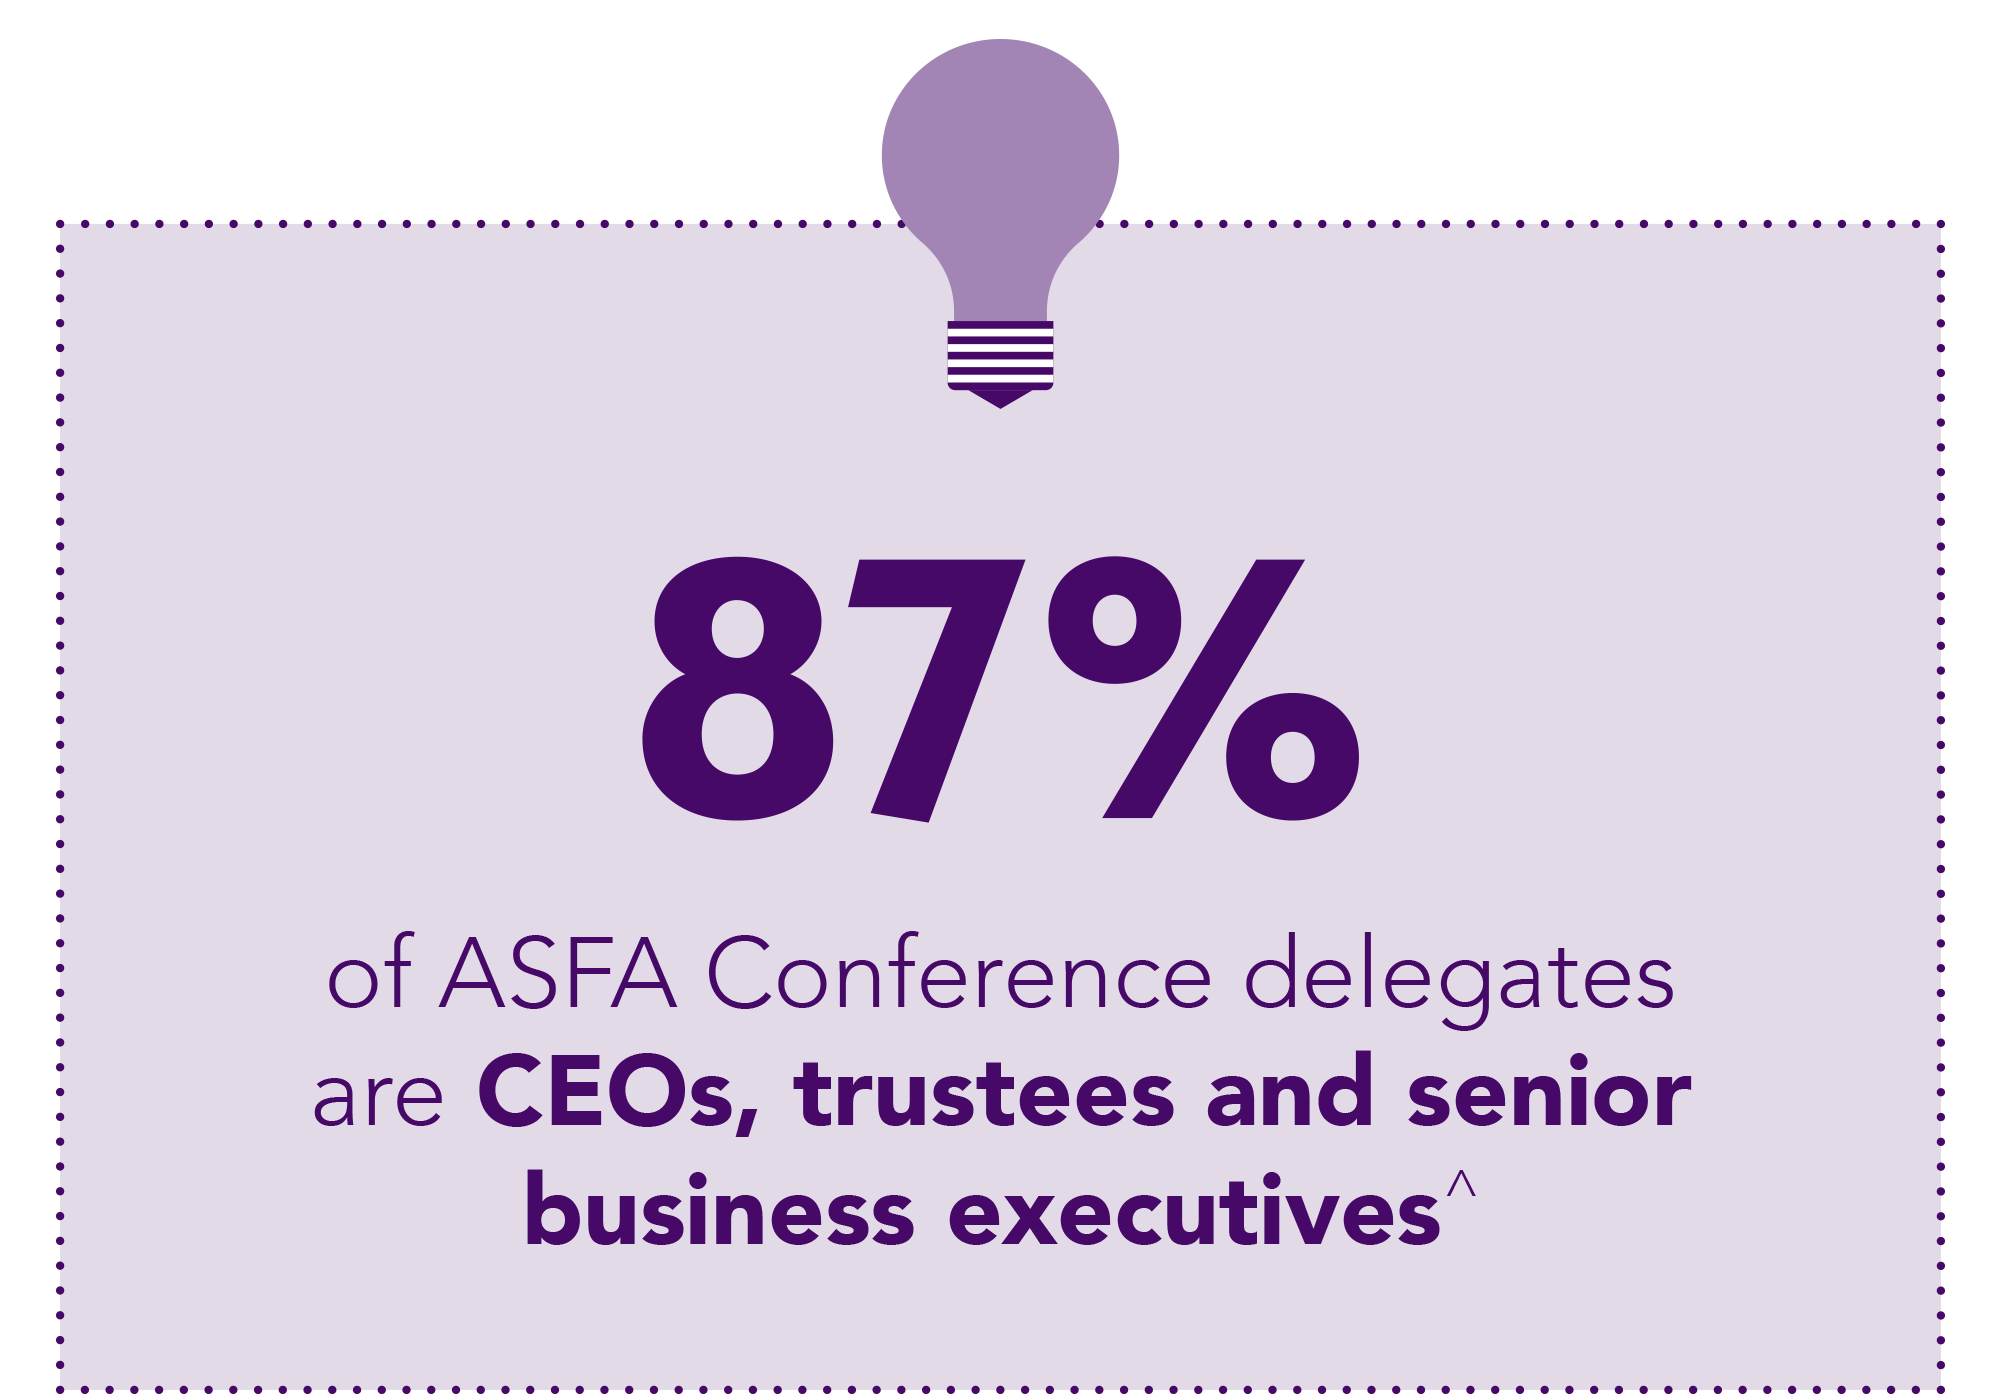 87% of delegates are CEOs, trustees and senior business executives^